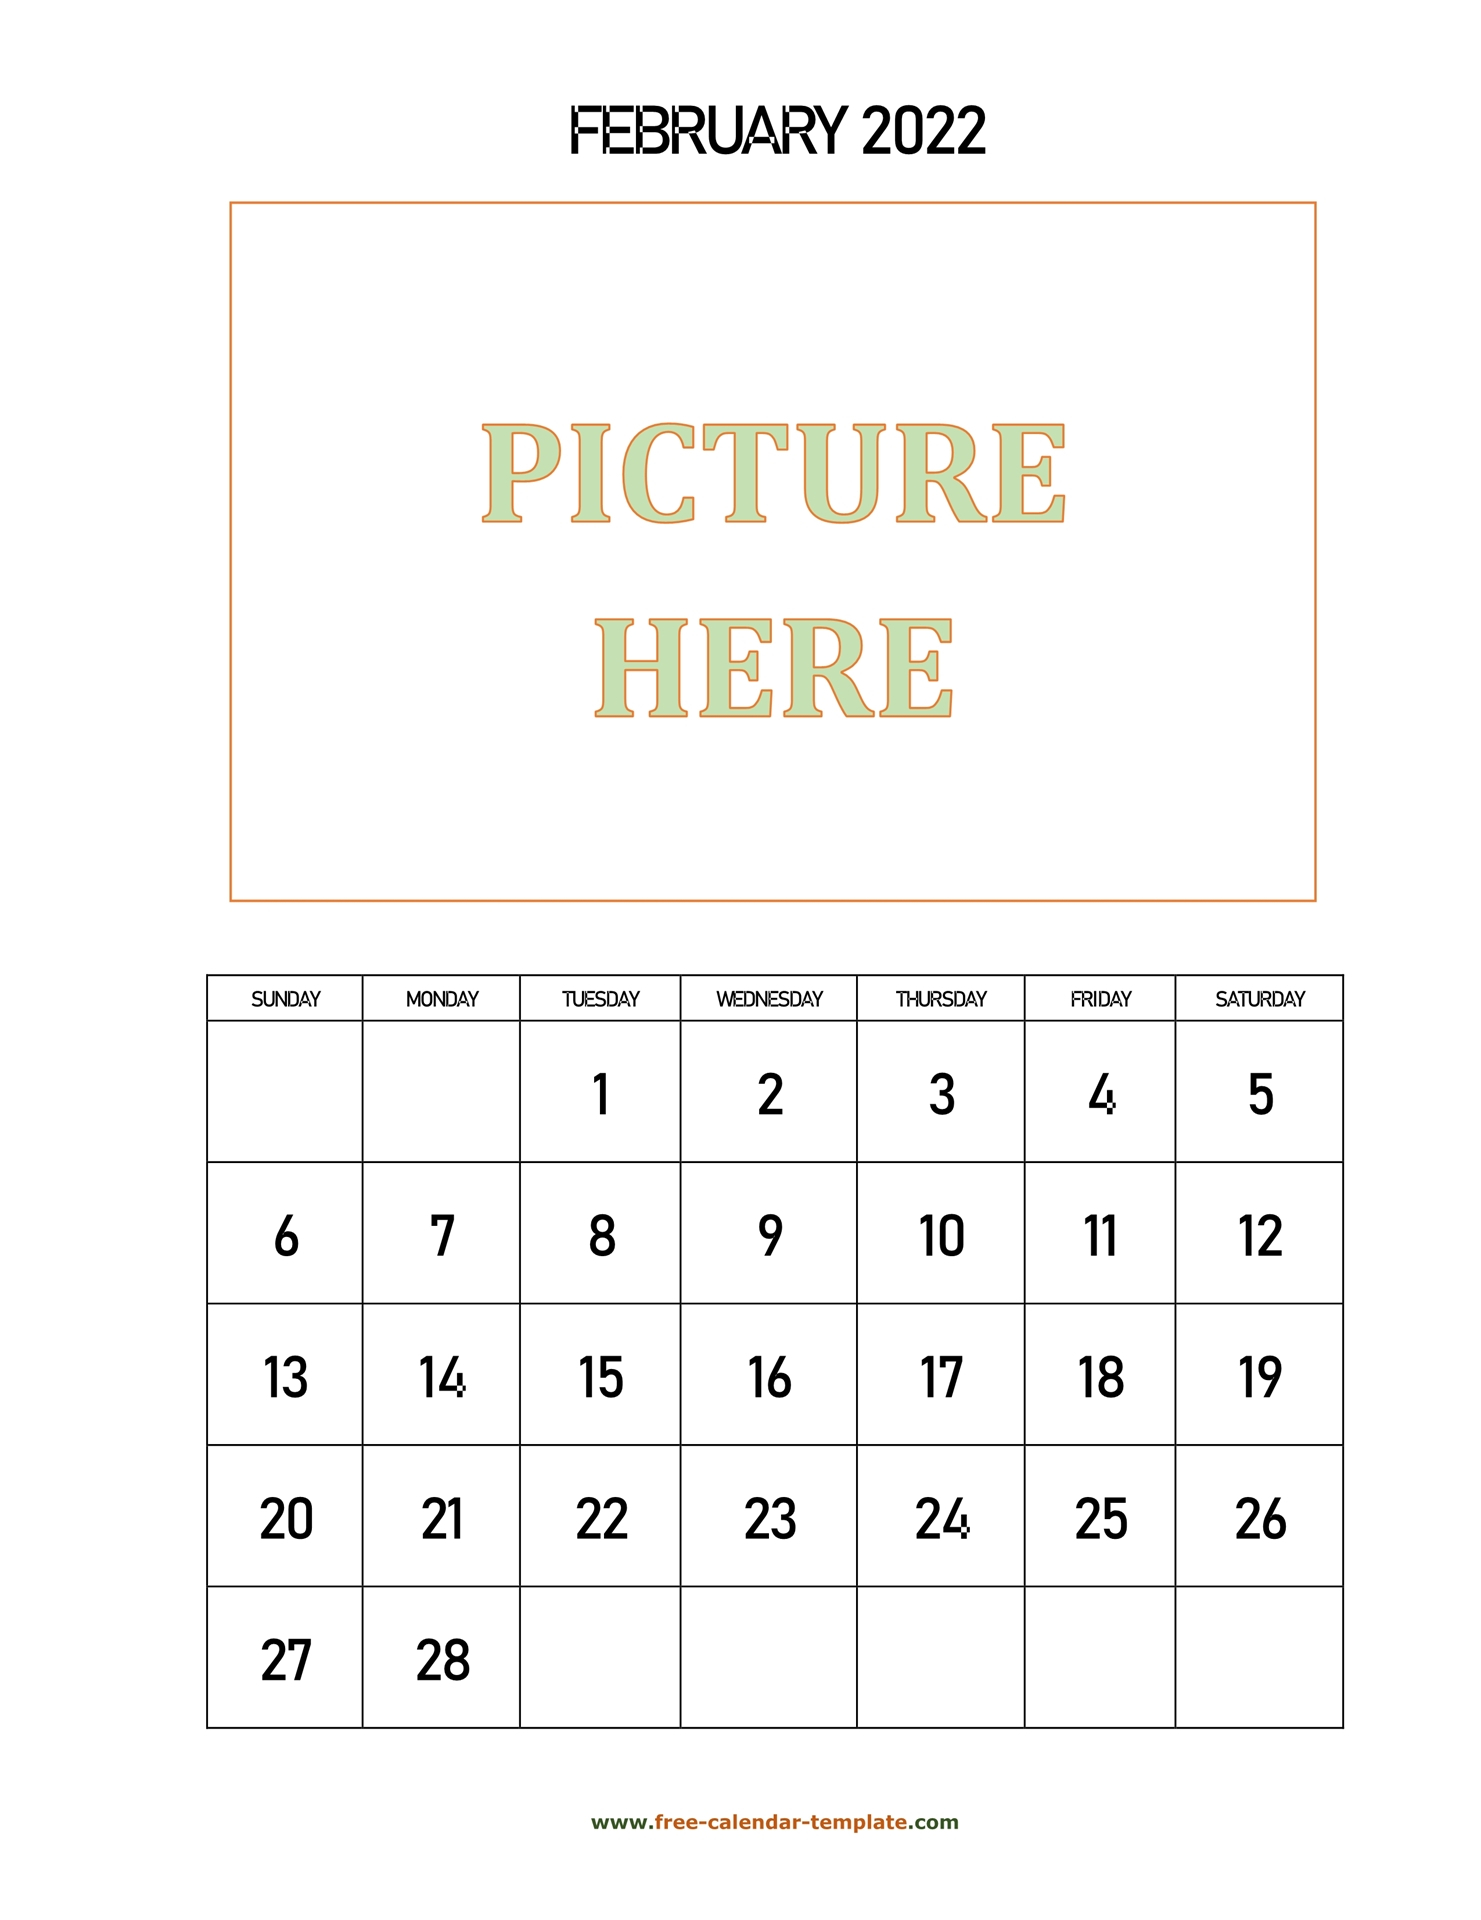 February Printable 2022 Calendar, Space For Add Picture with Feb 2022 Calendar Printable Free